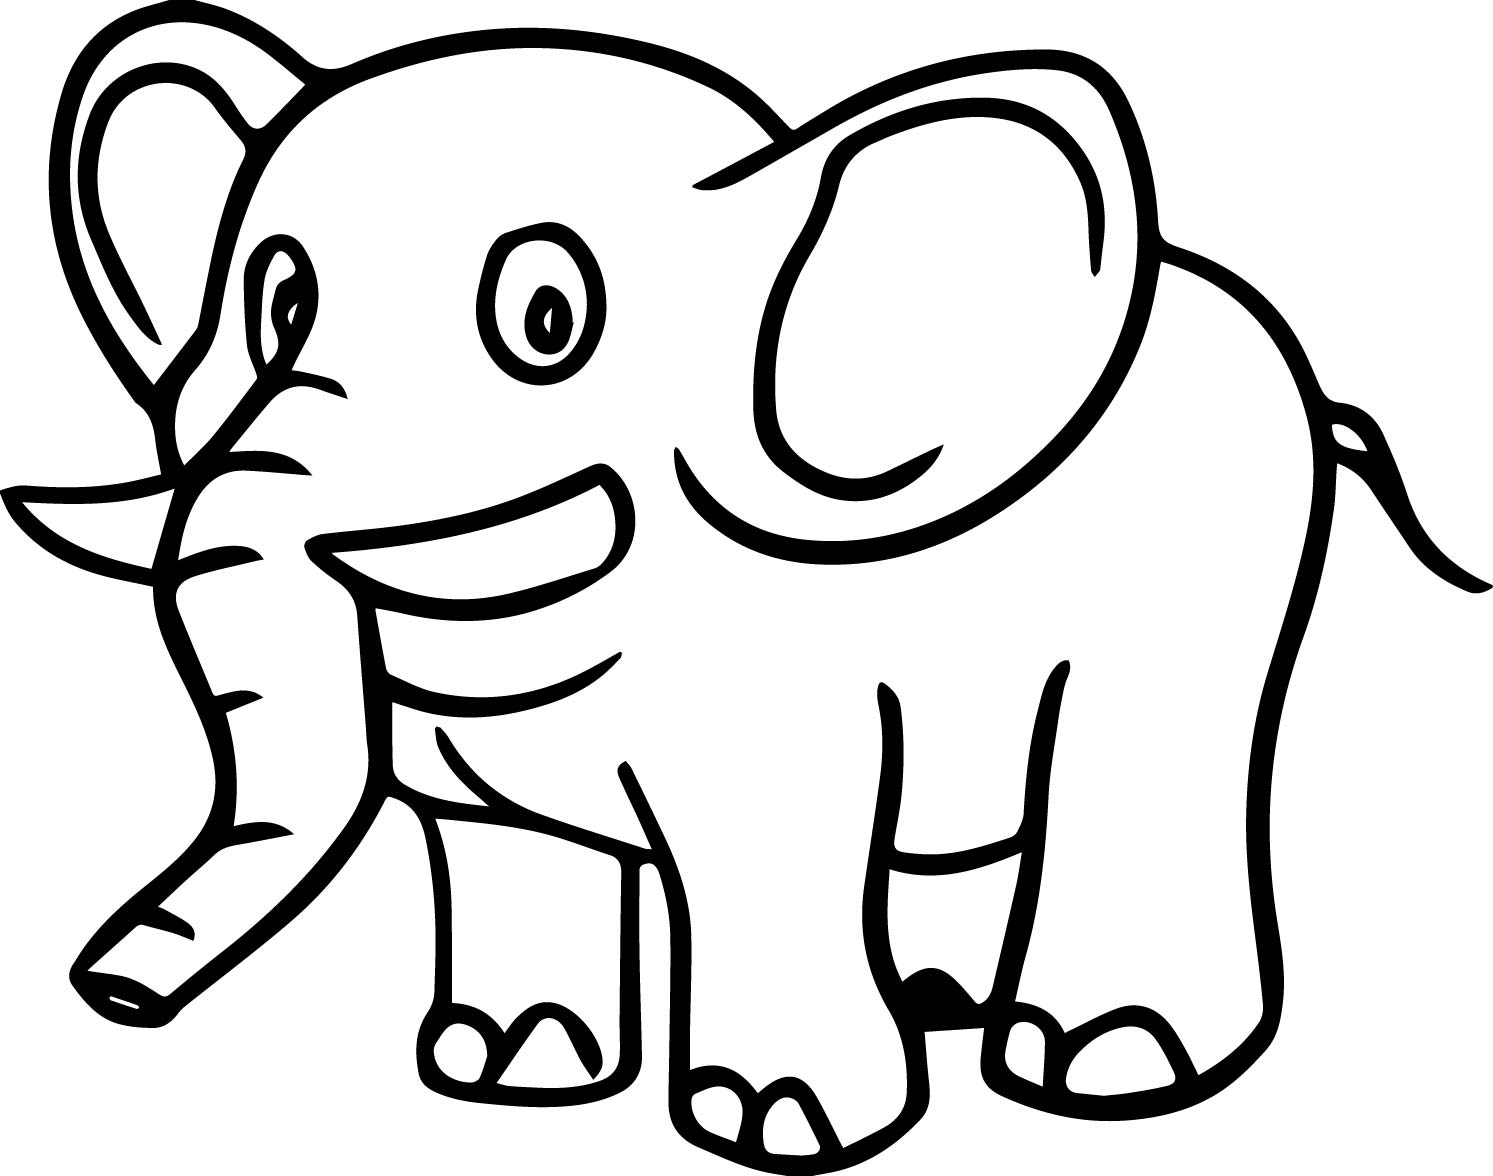 Just One Elephant Coloring Page